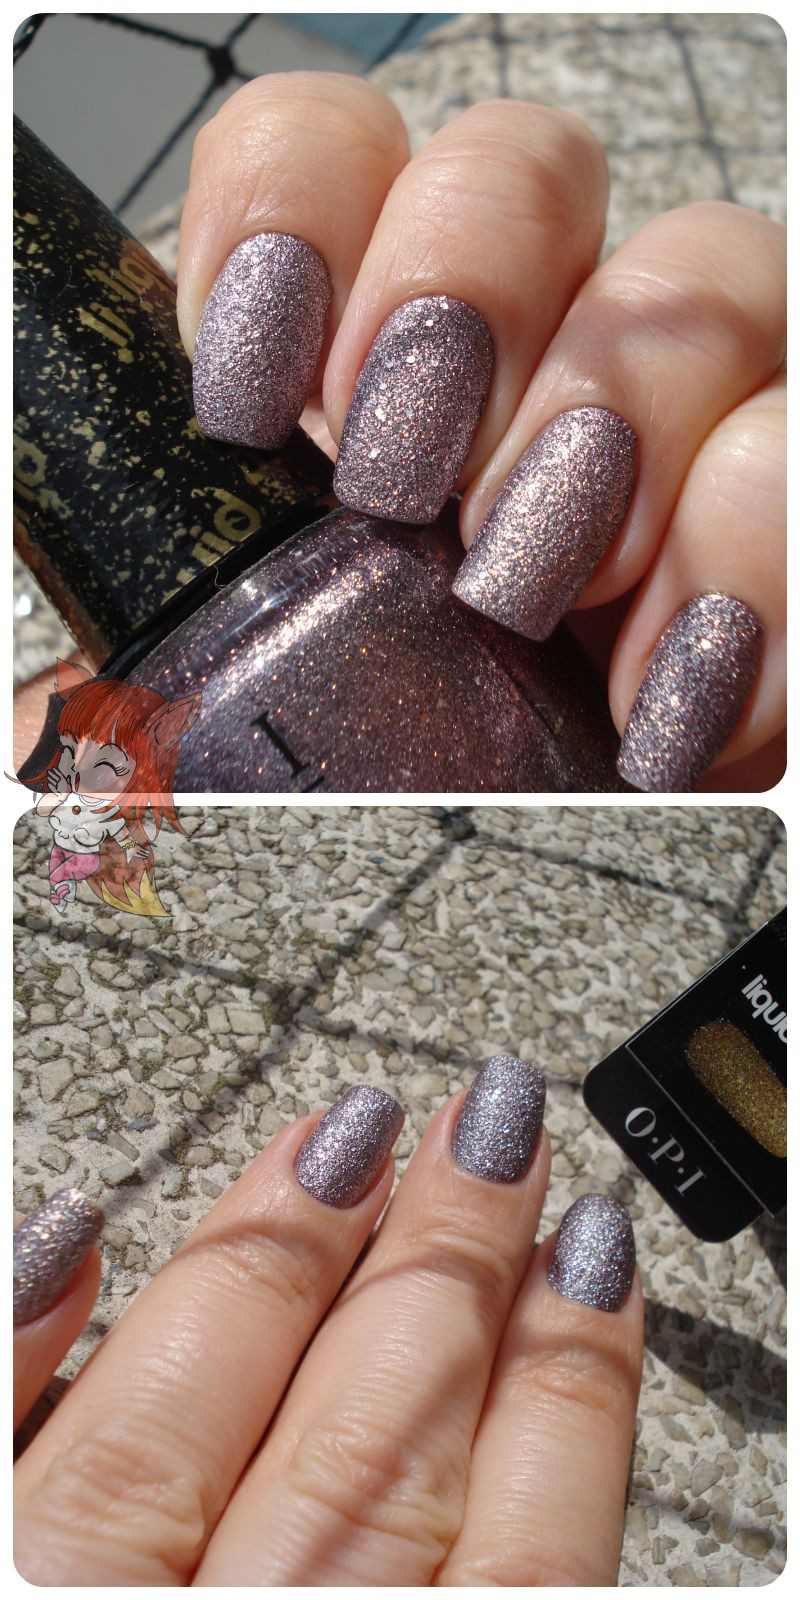 OPI :: Baby Please Come Home - Mariah Carey - Resenha